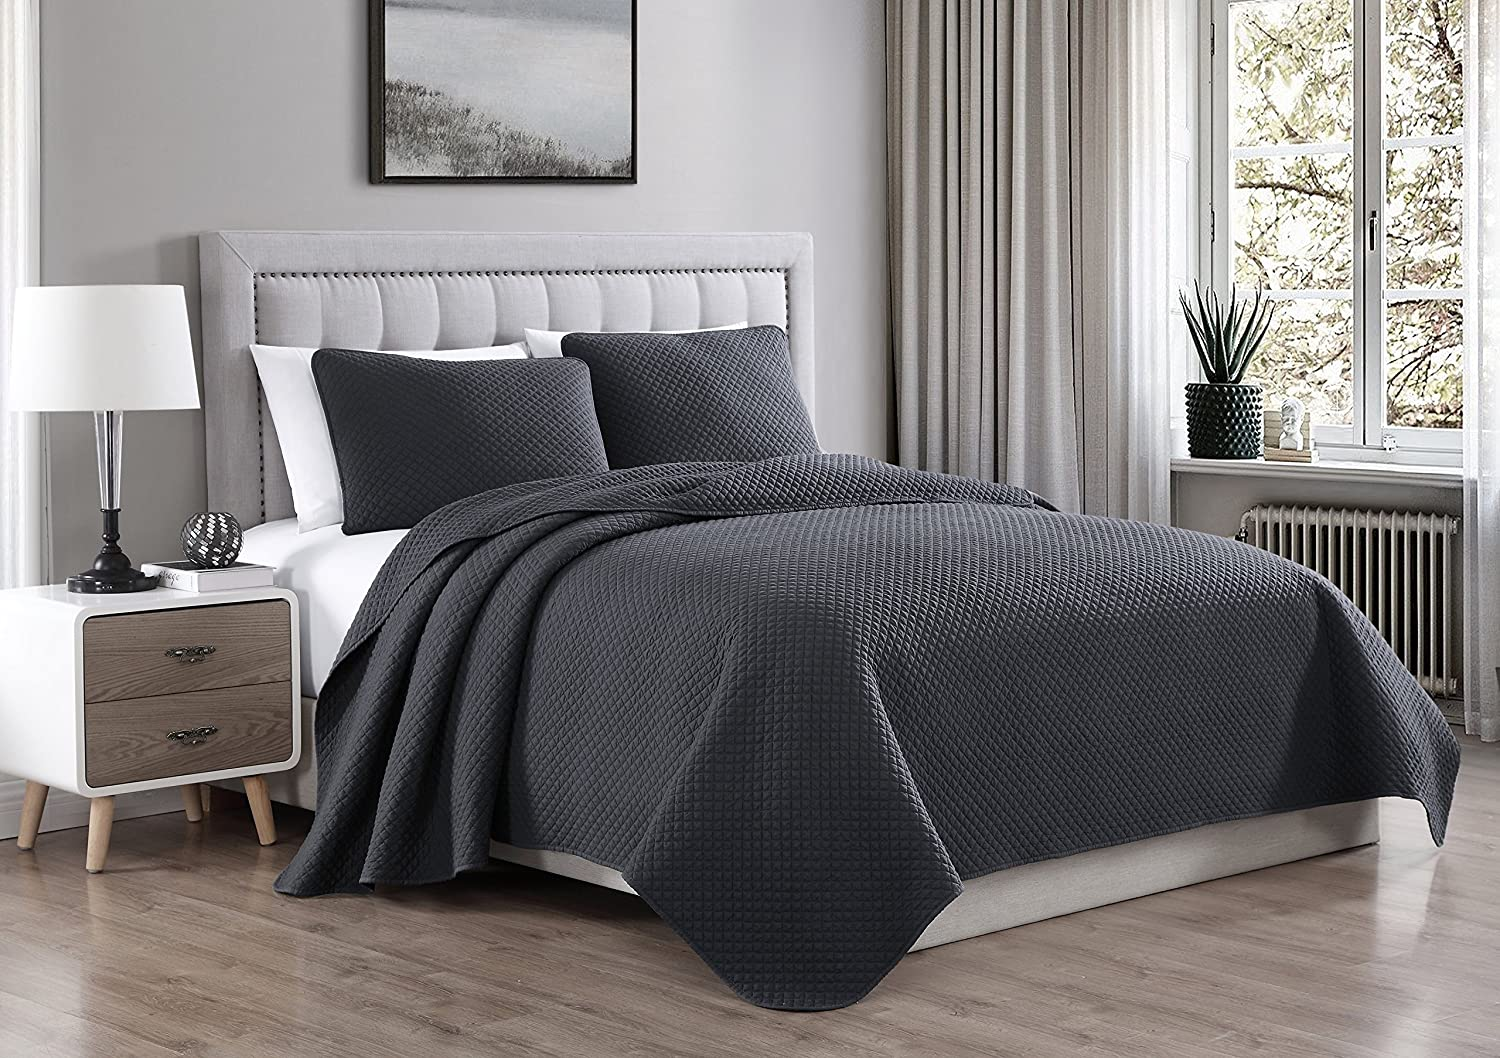 Cozy Beddings Elliott Diamond Stitched Design 2 Piece Prewashed Coverlet Quilted Bedspread Set, King/Cal-King, Charcoal Grey